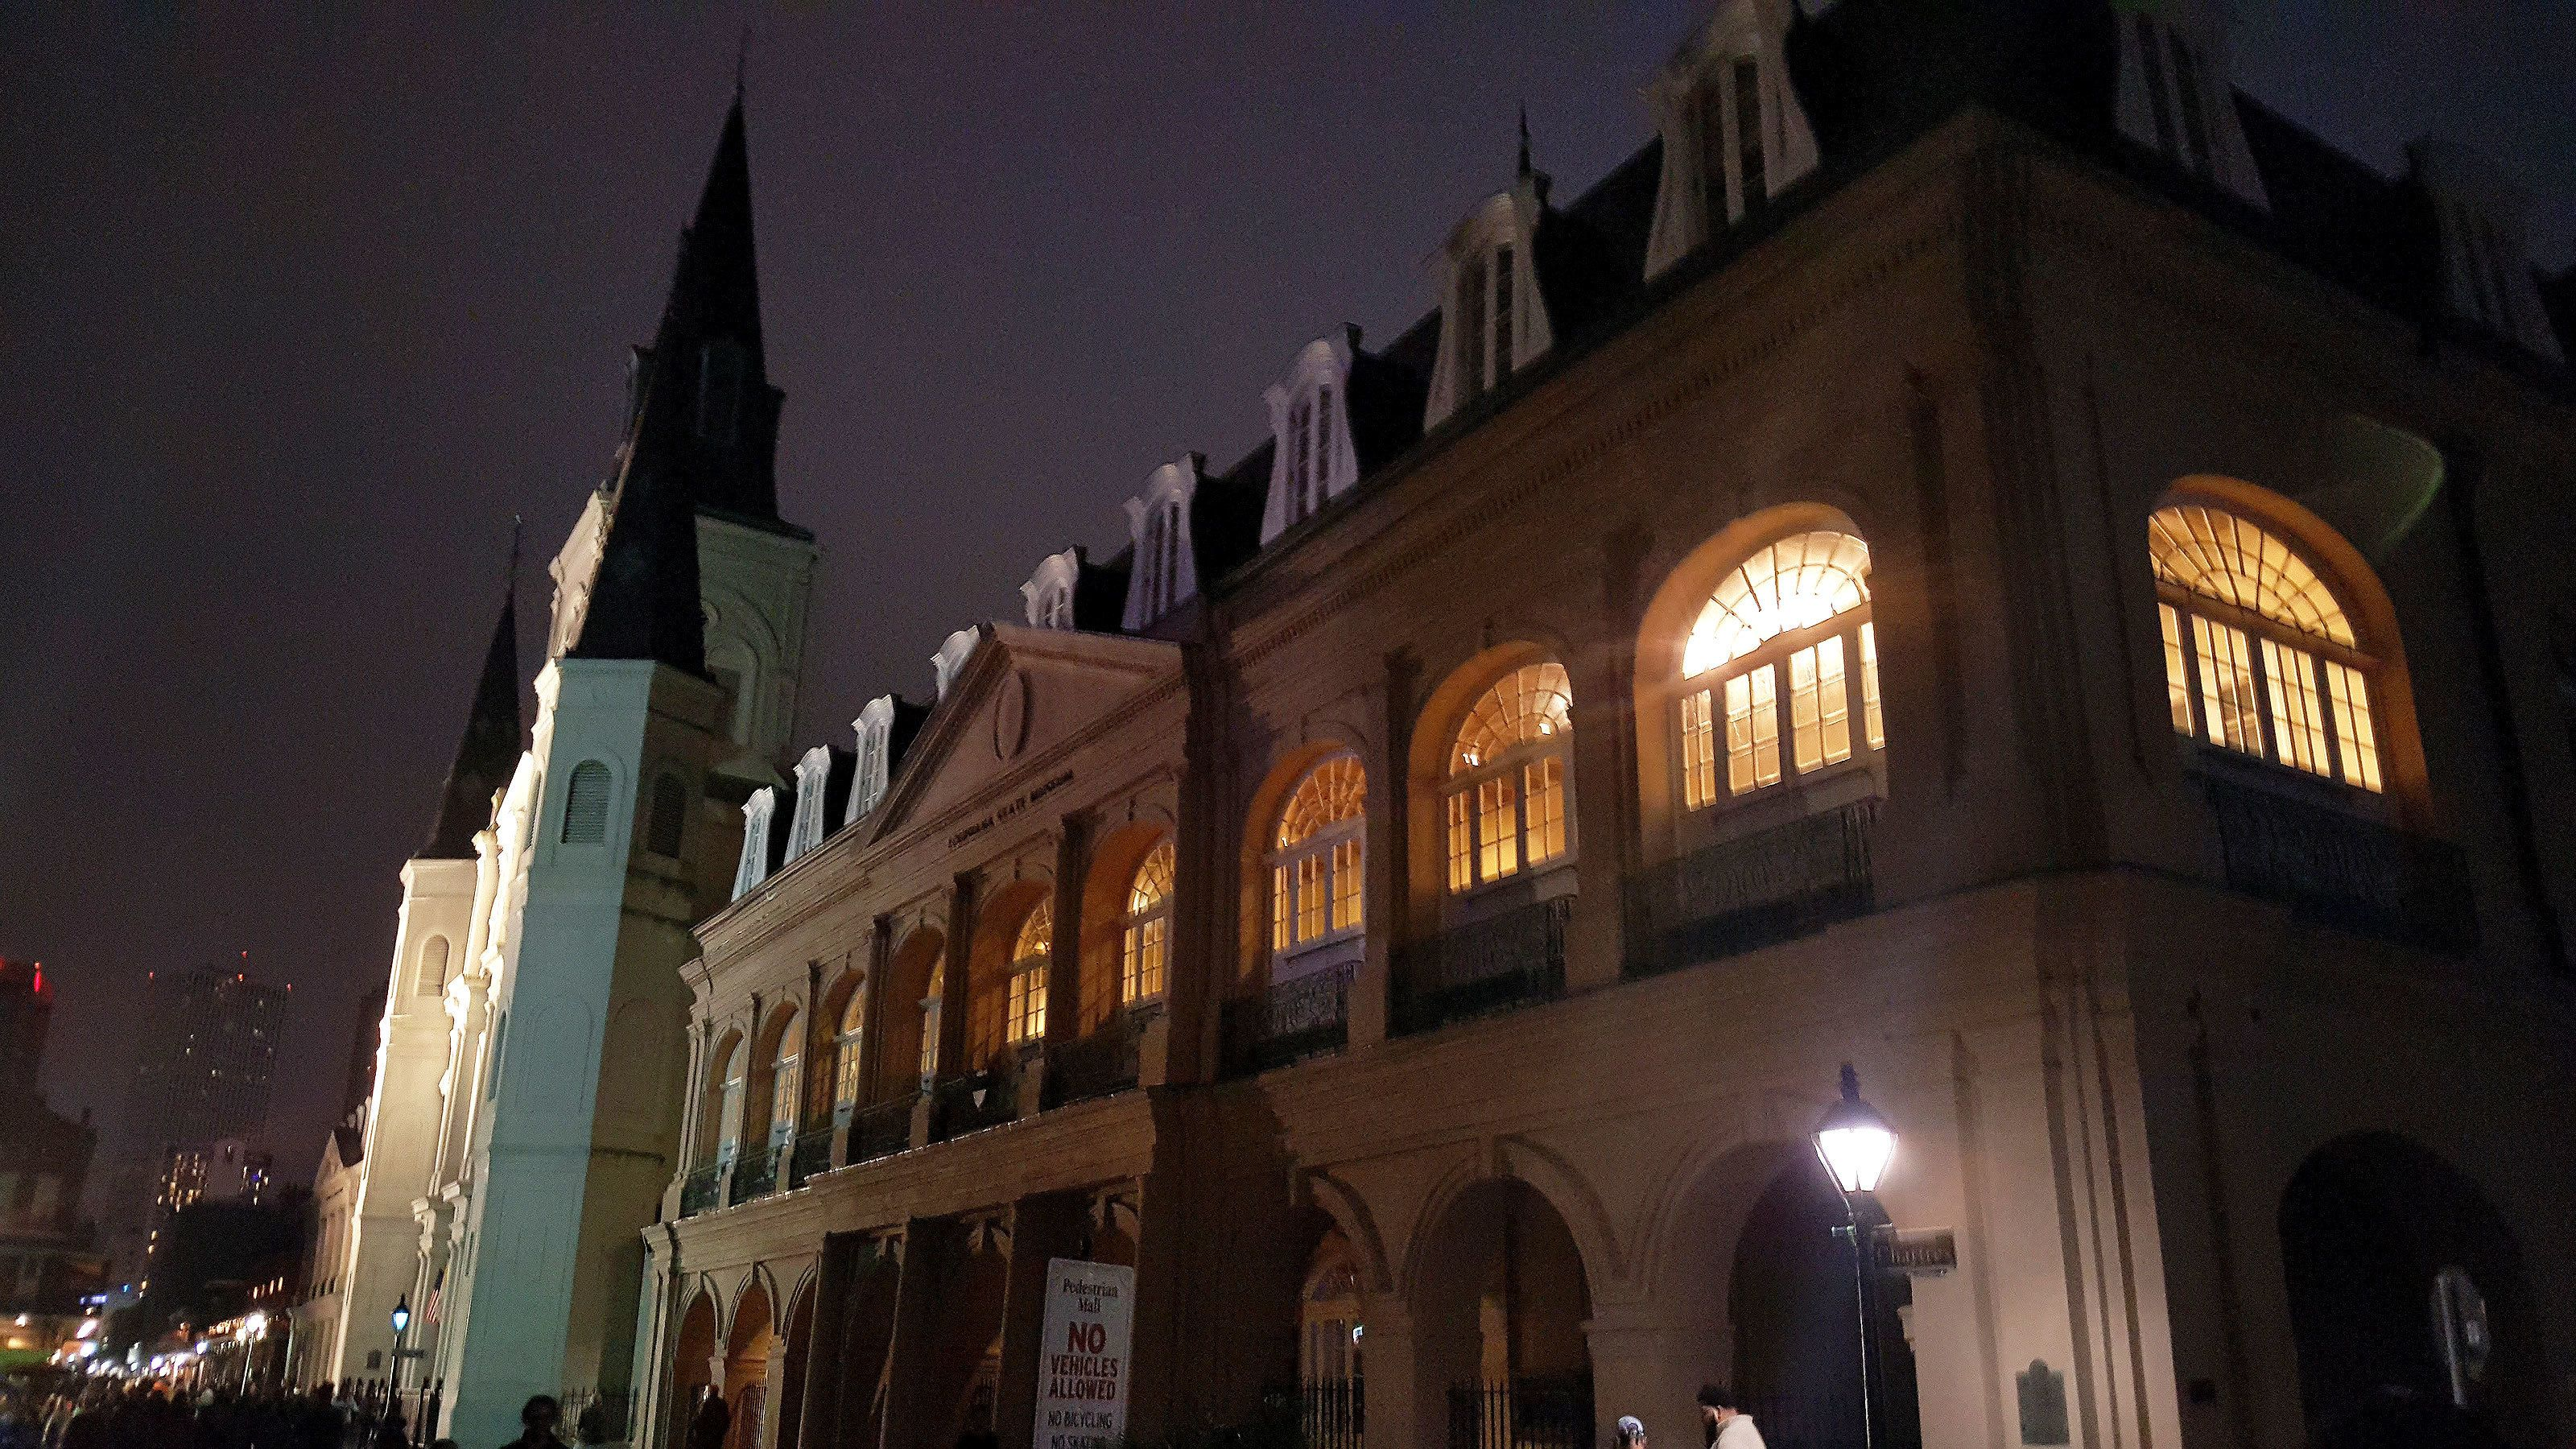 Exterior of building at night in New Orleans